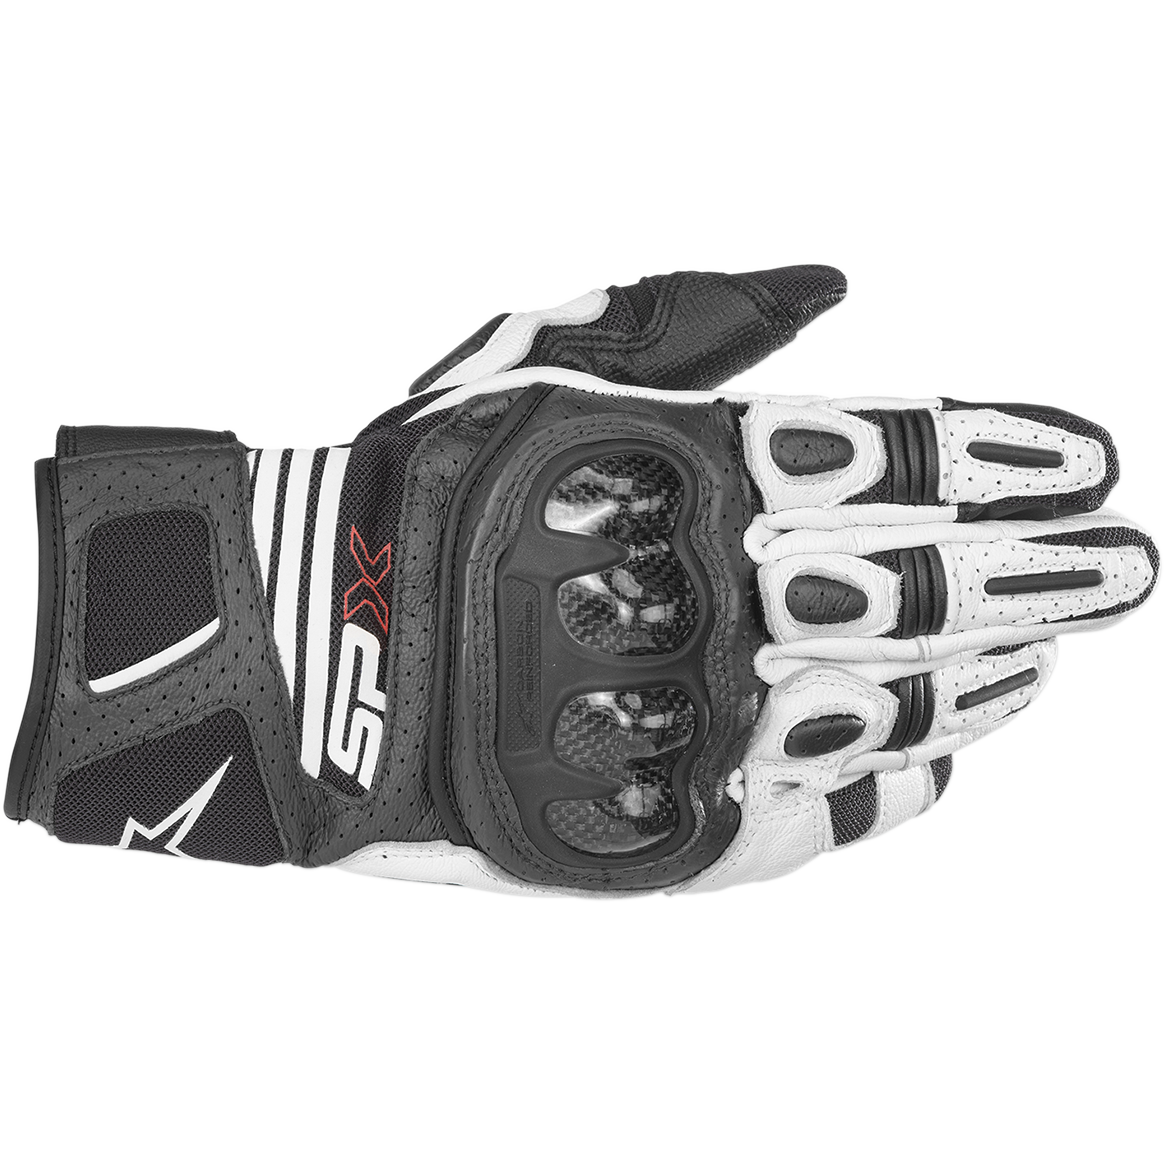 ALPINESTARS SP-X AIR CARBON V2 GLOVE - BLACK WHITE